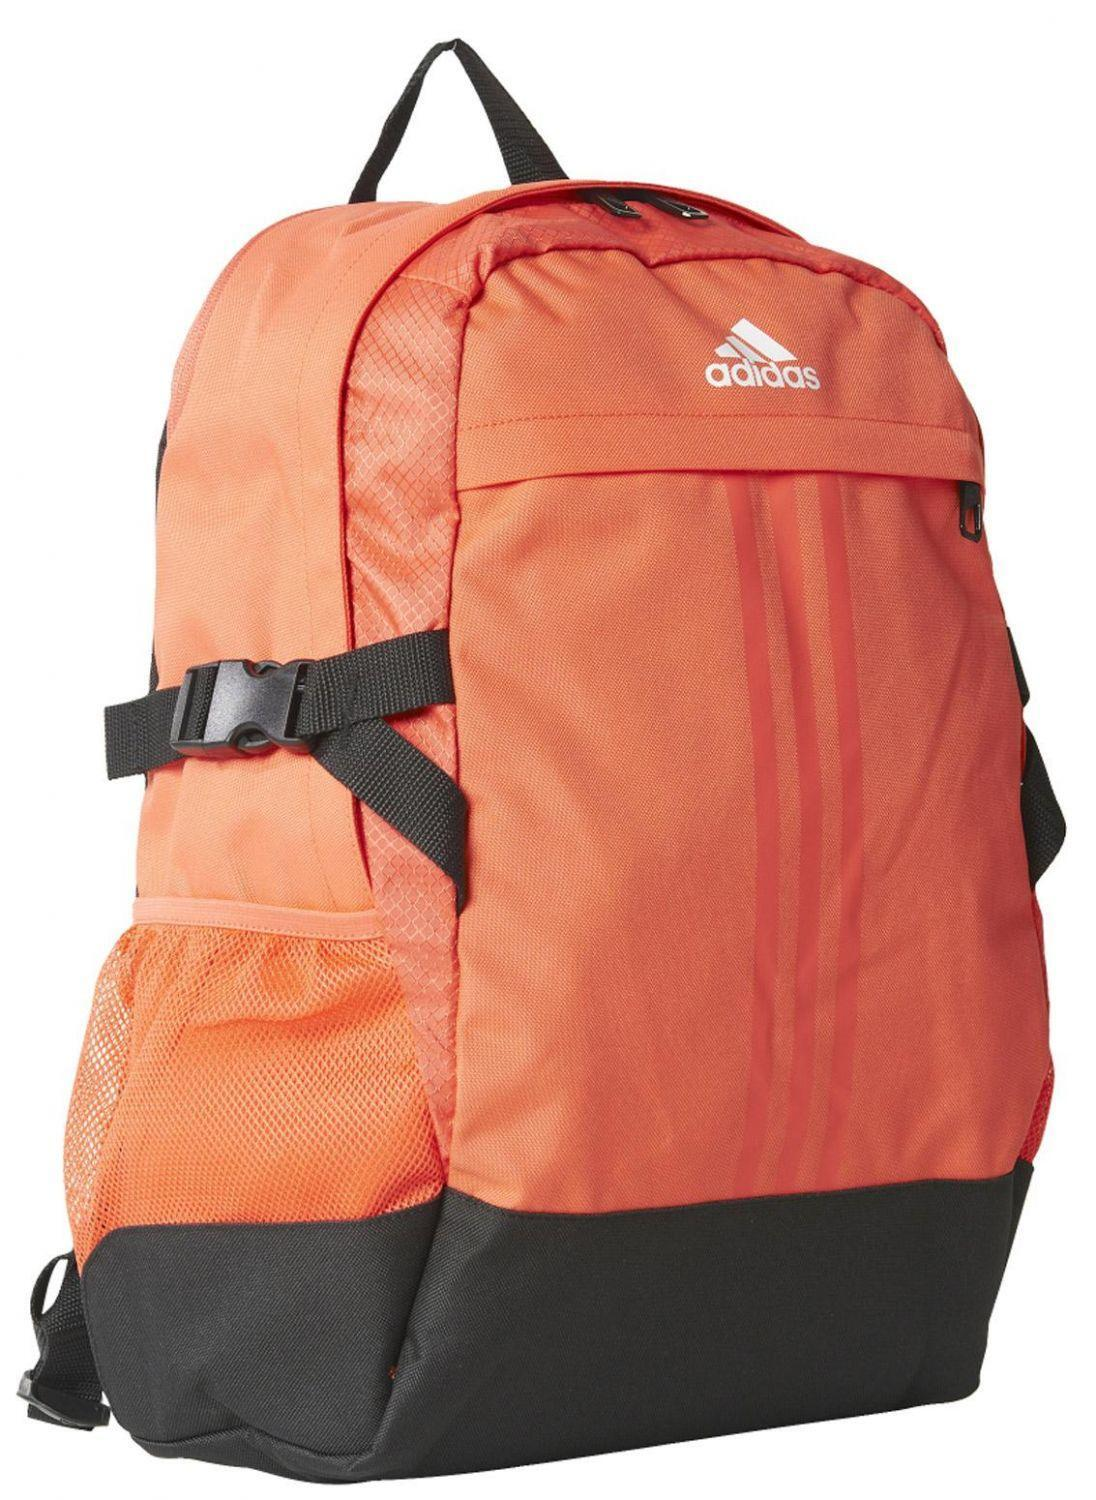 adidas-backpack-power-iii-m-laptoprucksack-farbe-easy-coral-s17-easy-coral-s17-white-